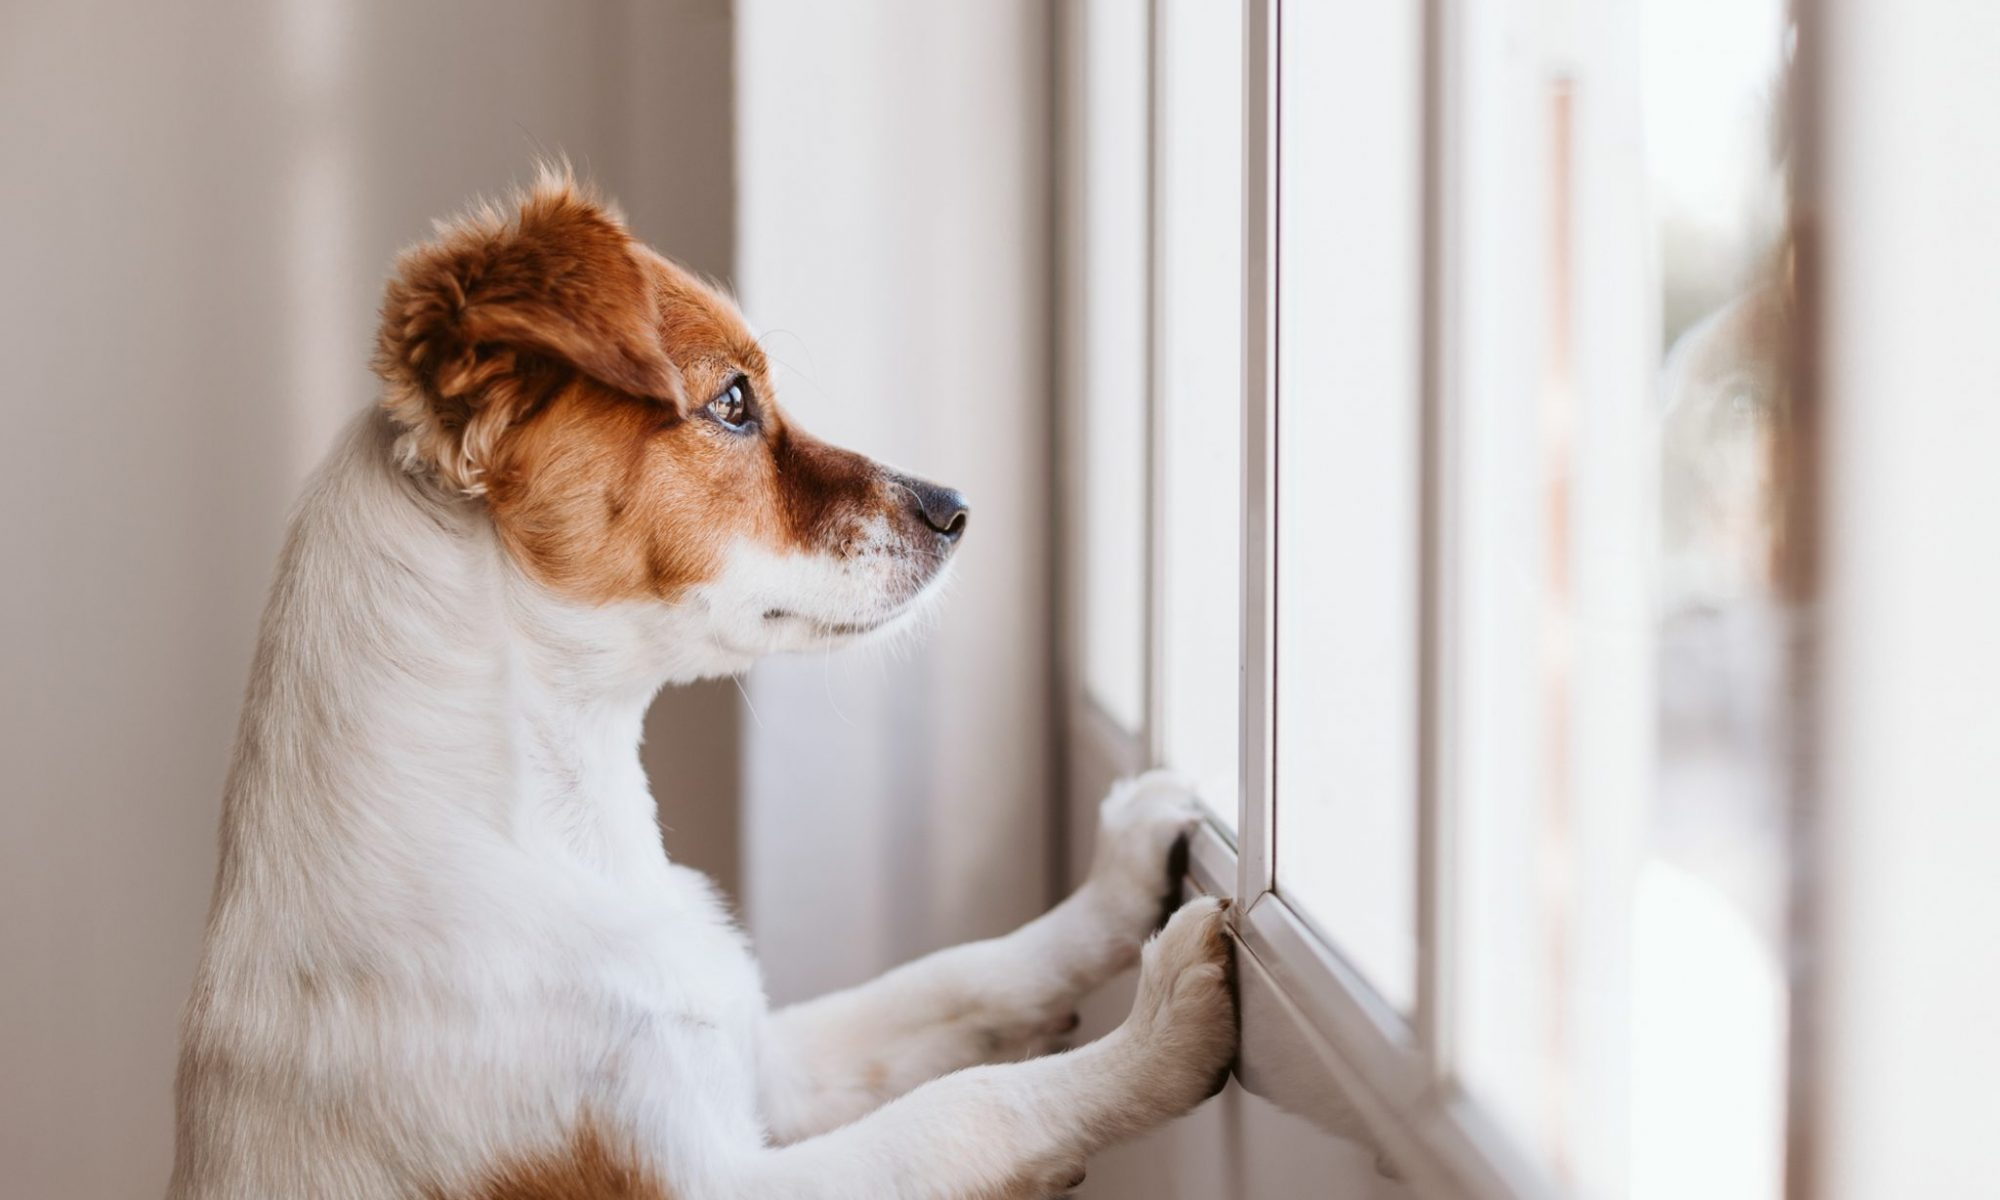 A white and brown dog propped up with his two front paws looking outside a window. Business Impact article on Why businesses must develop greater integrity.